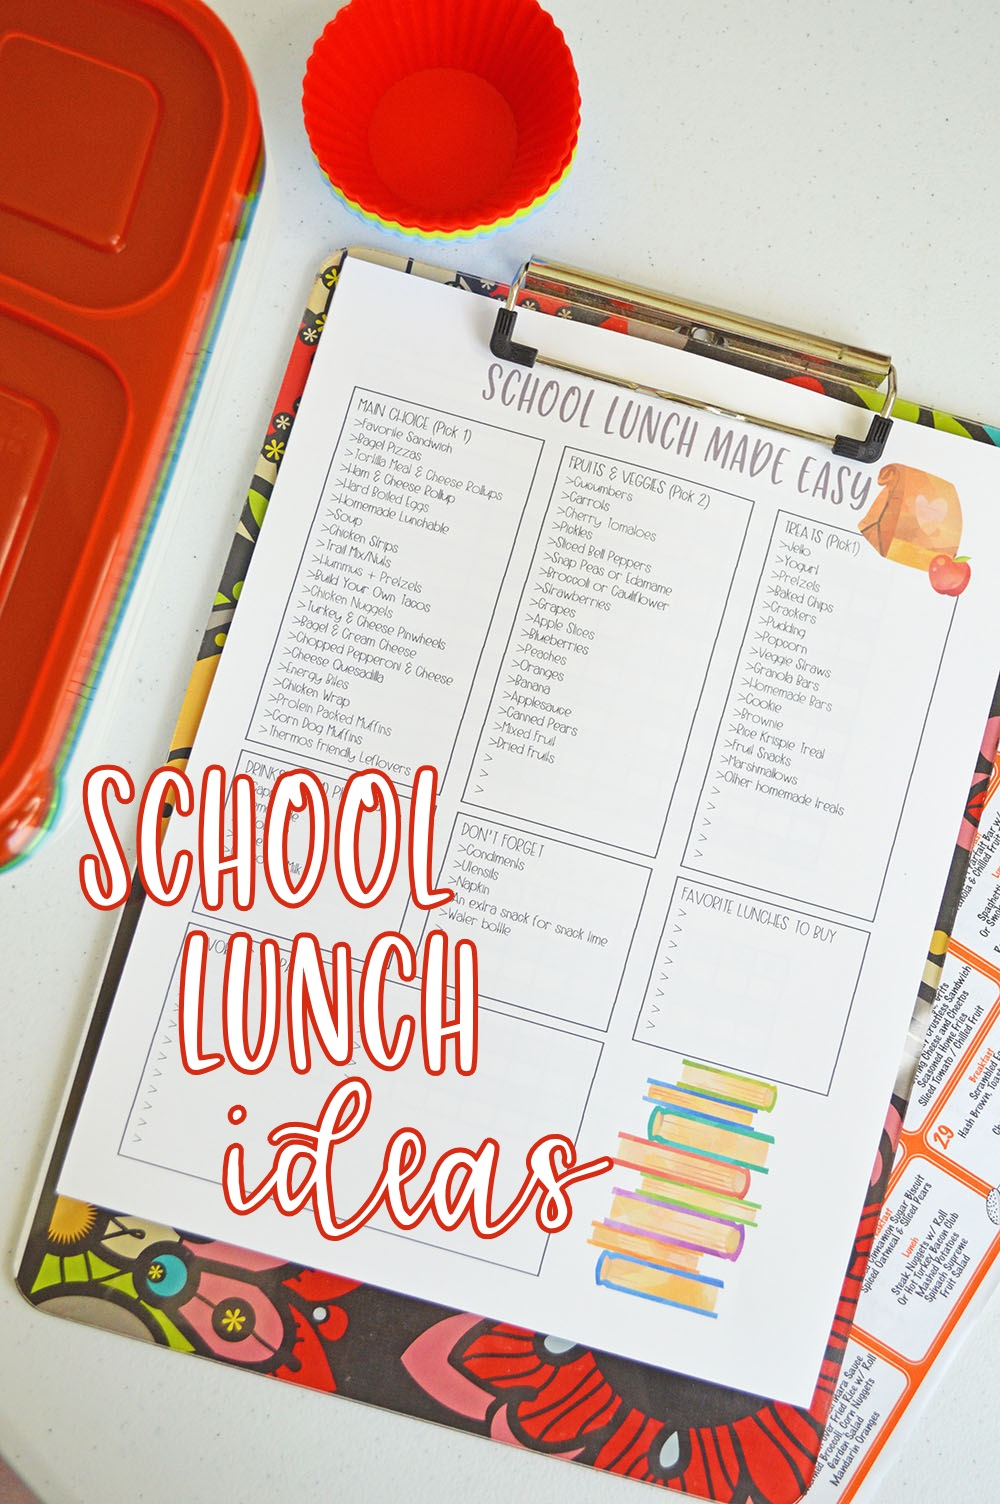 School Lunch Ideas Printable - Planning Inspired